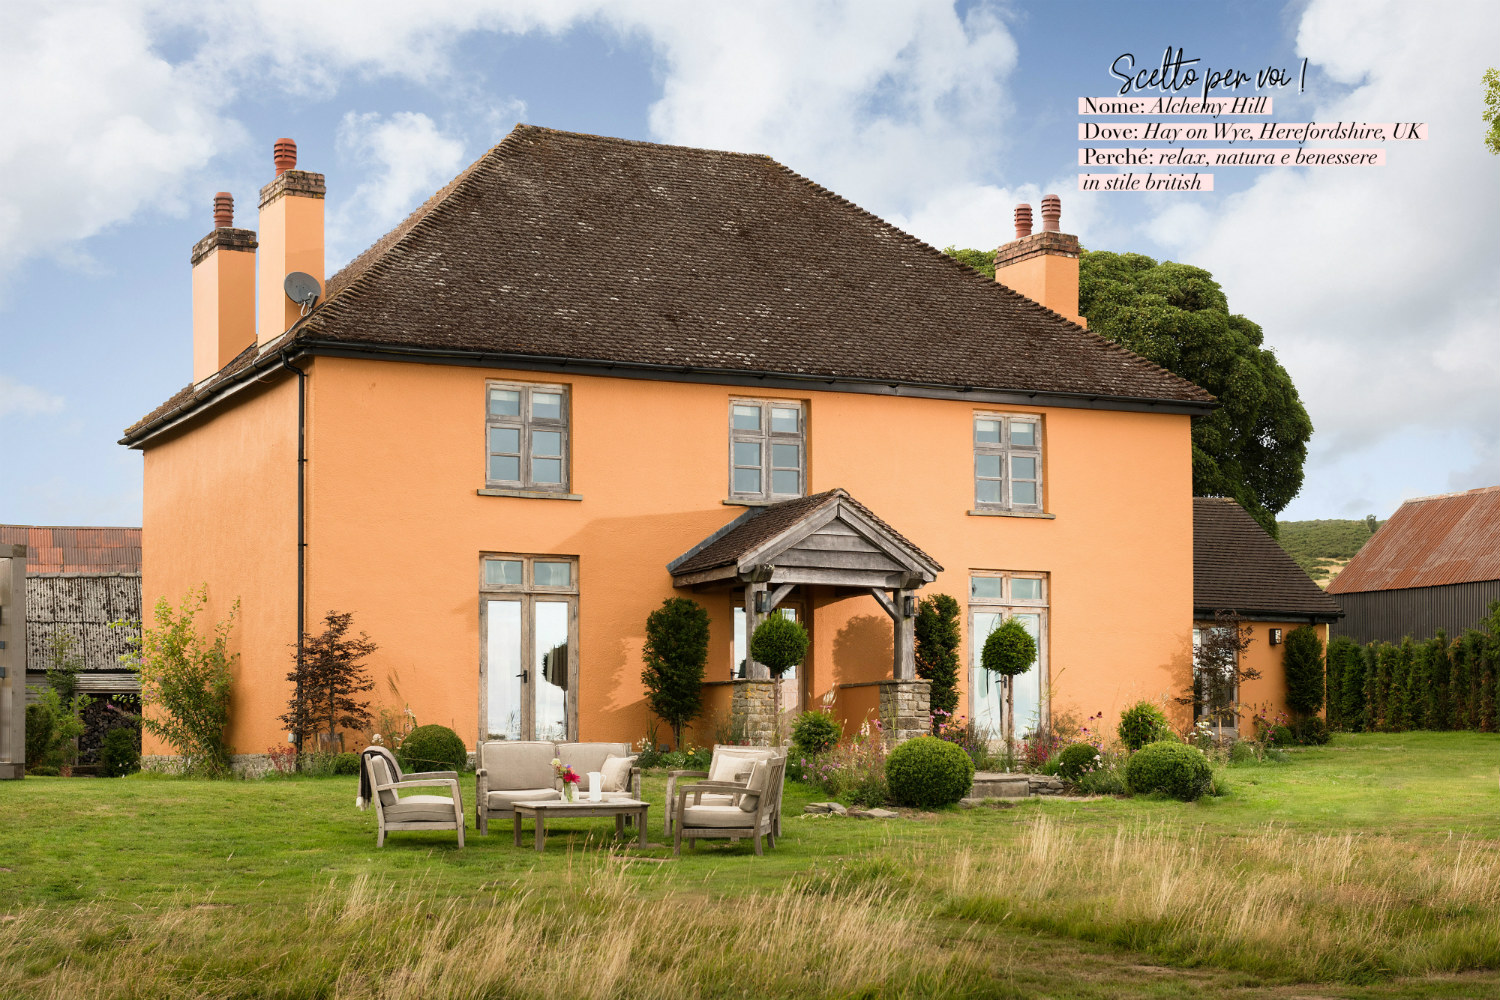 Cottage inghilterra alchemy hill westwing magazine for Nuovo stile cottage in inghilterra